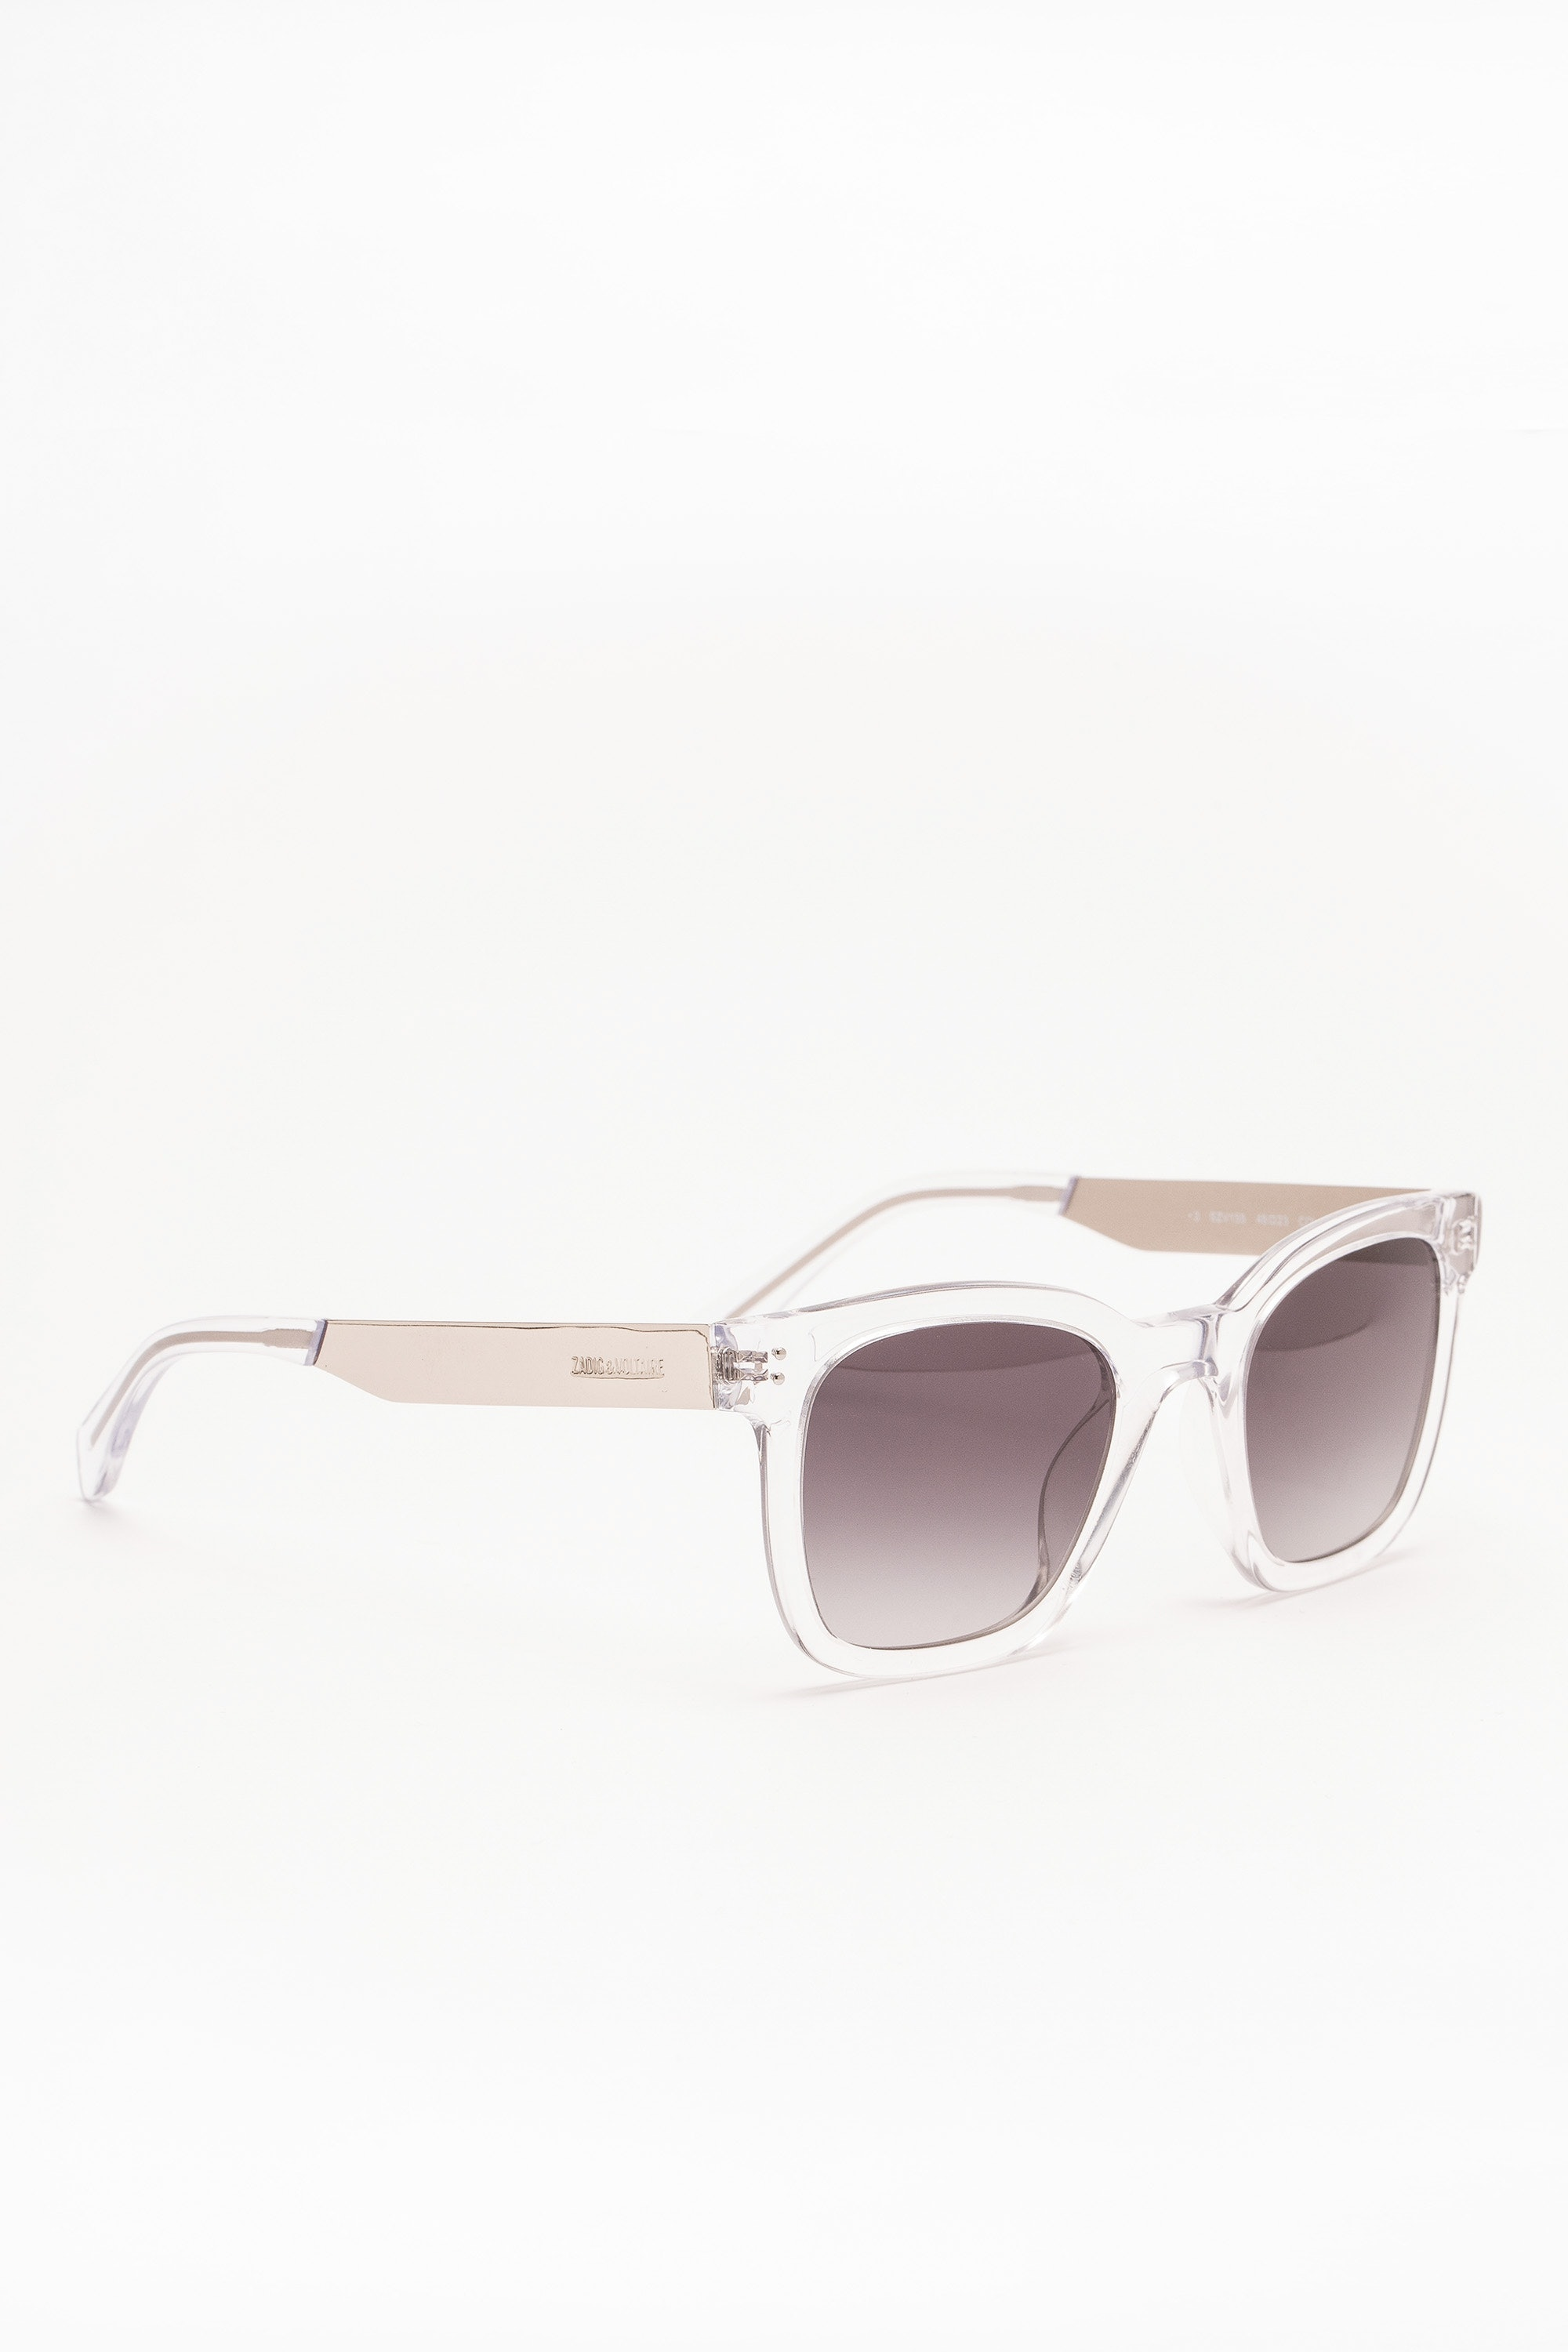 Mixte Square Sunglasses